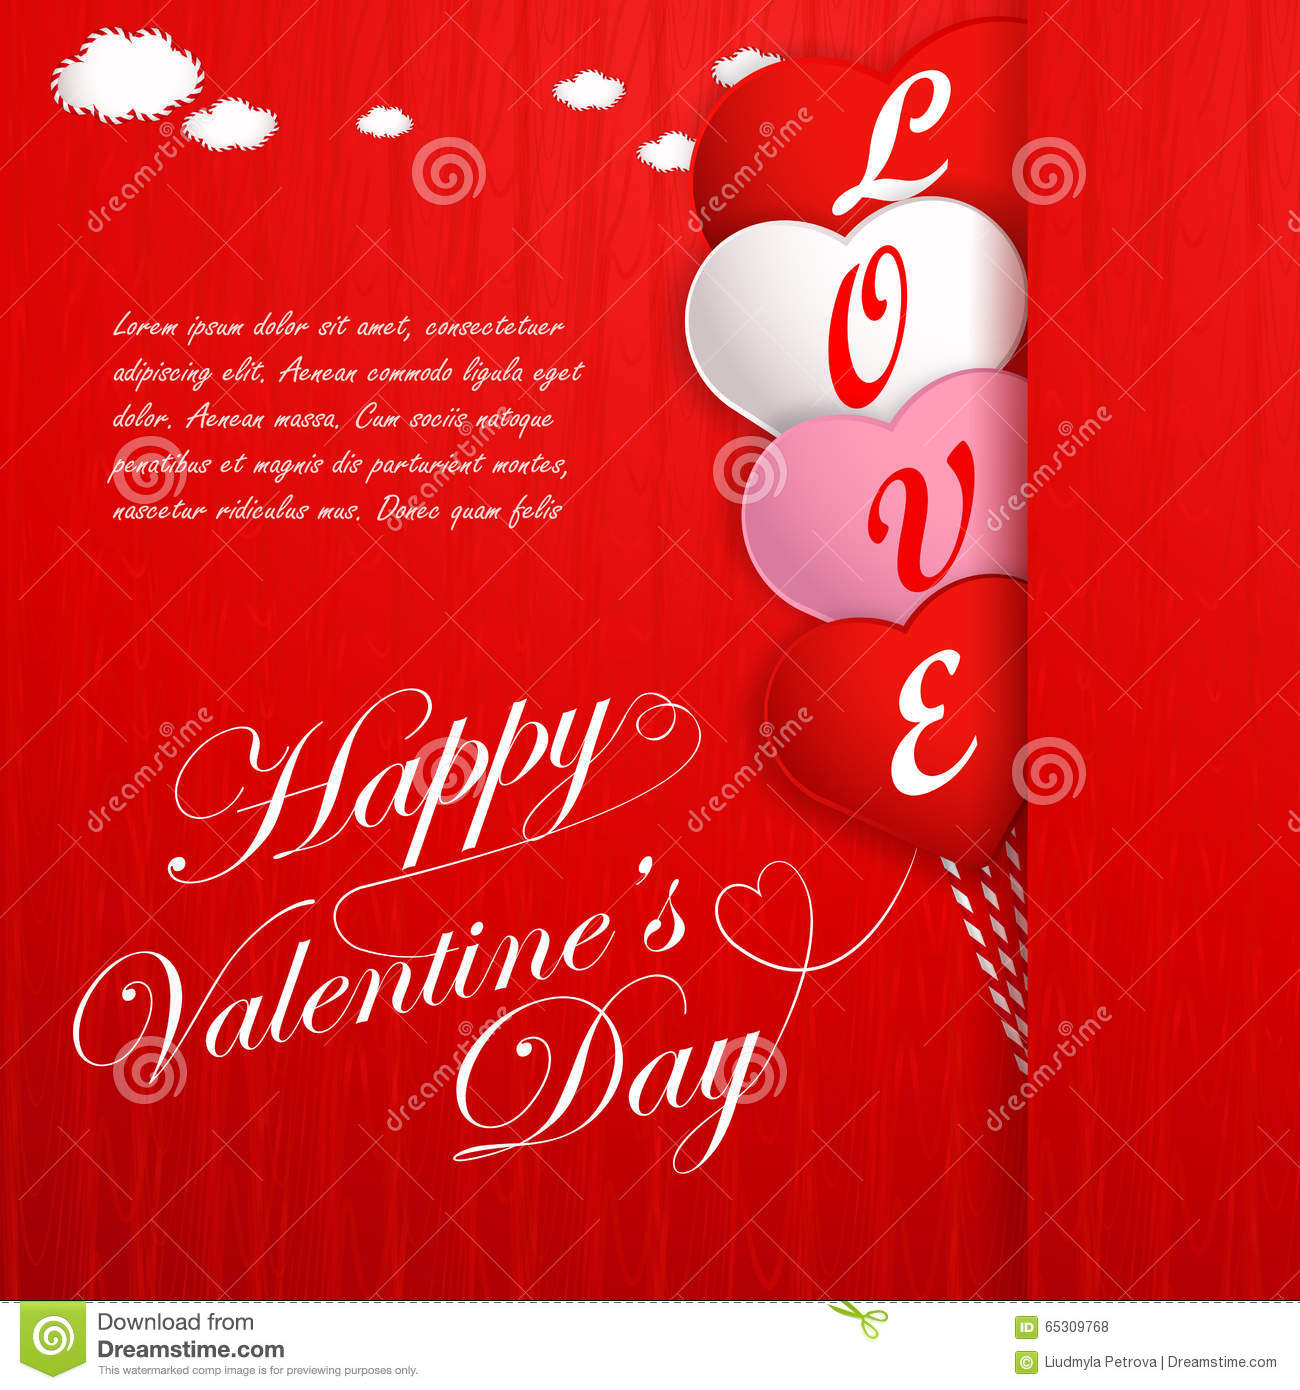 Valentines Day Card With Hearts And Words Of Love Vector – Valentine Card Words